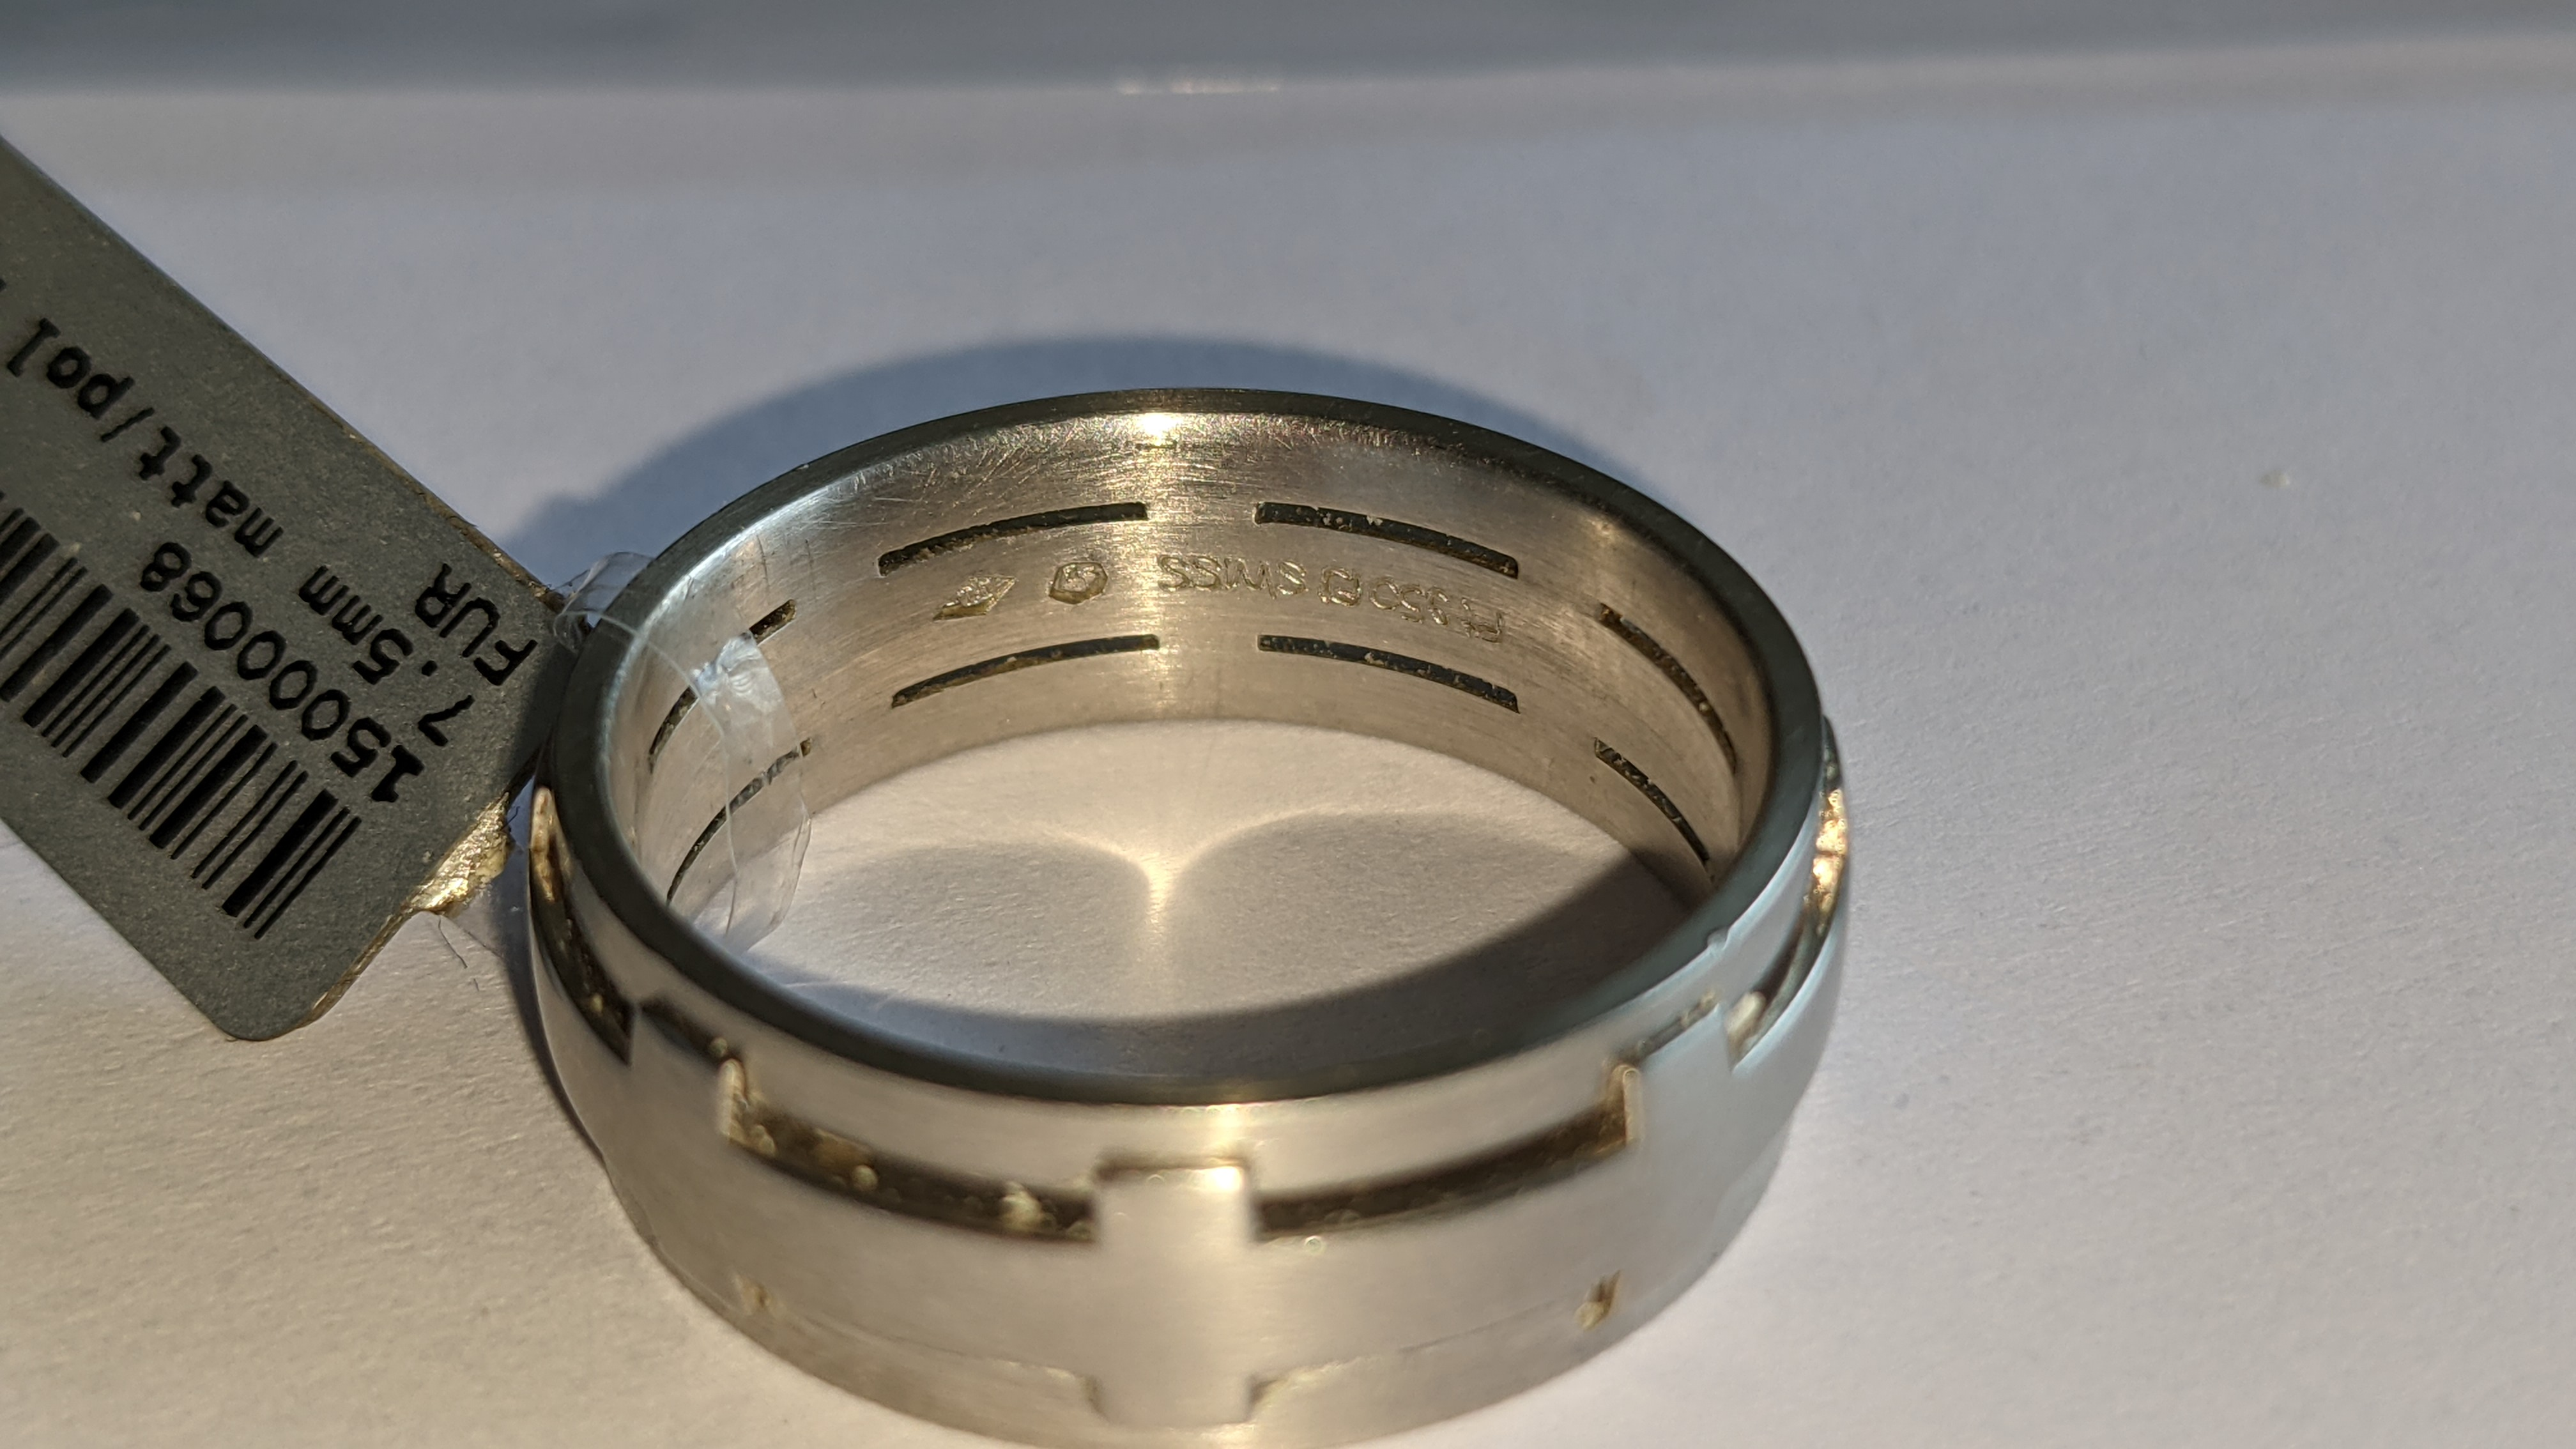 Platinum 950 ring in matt & polished finish, 7.5mm wide. RRP £2,960 - Image 9 of 15